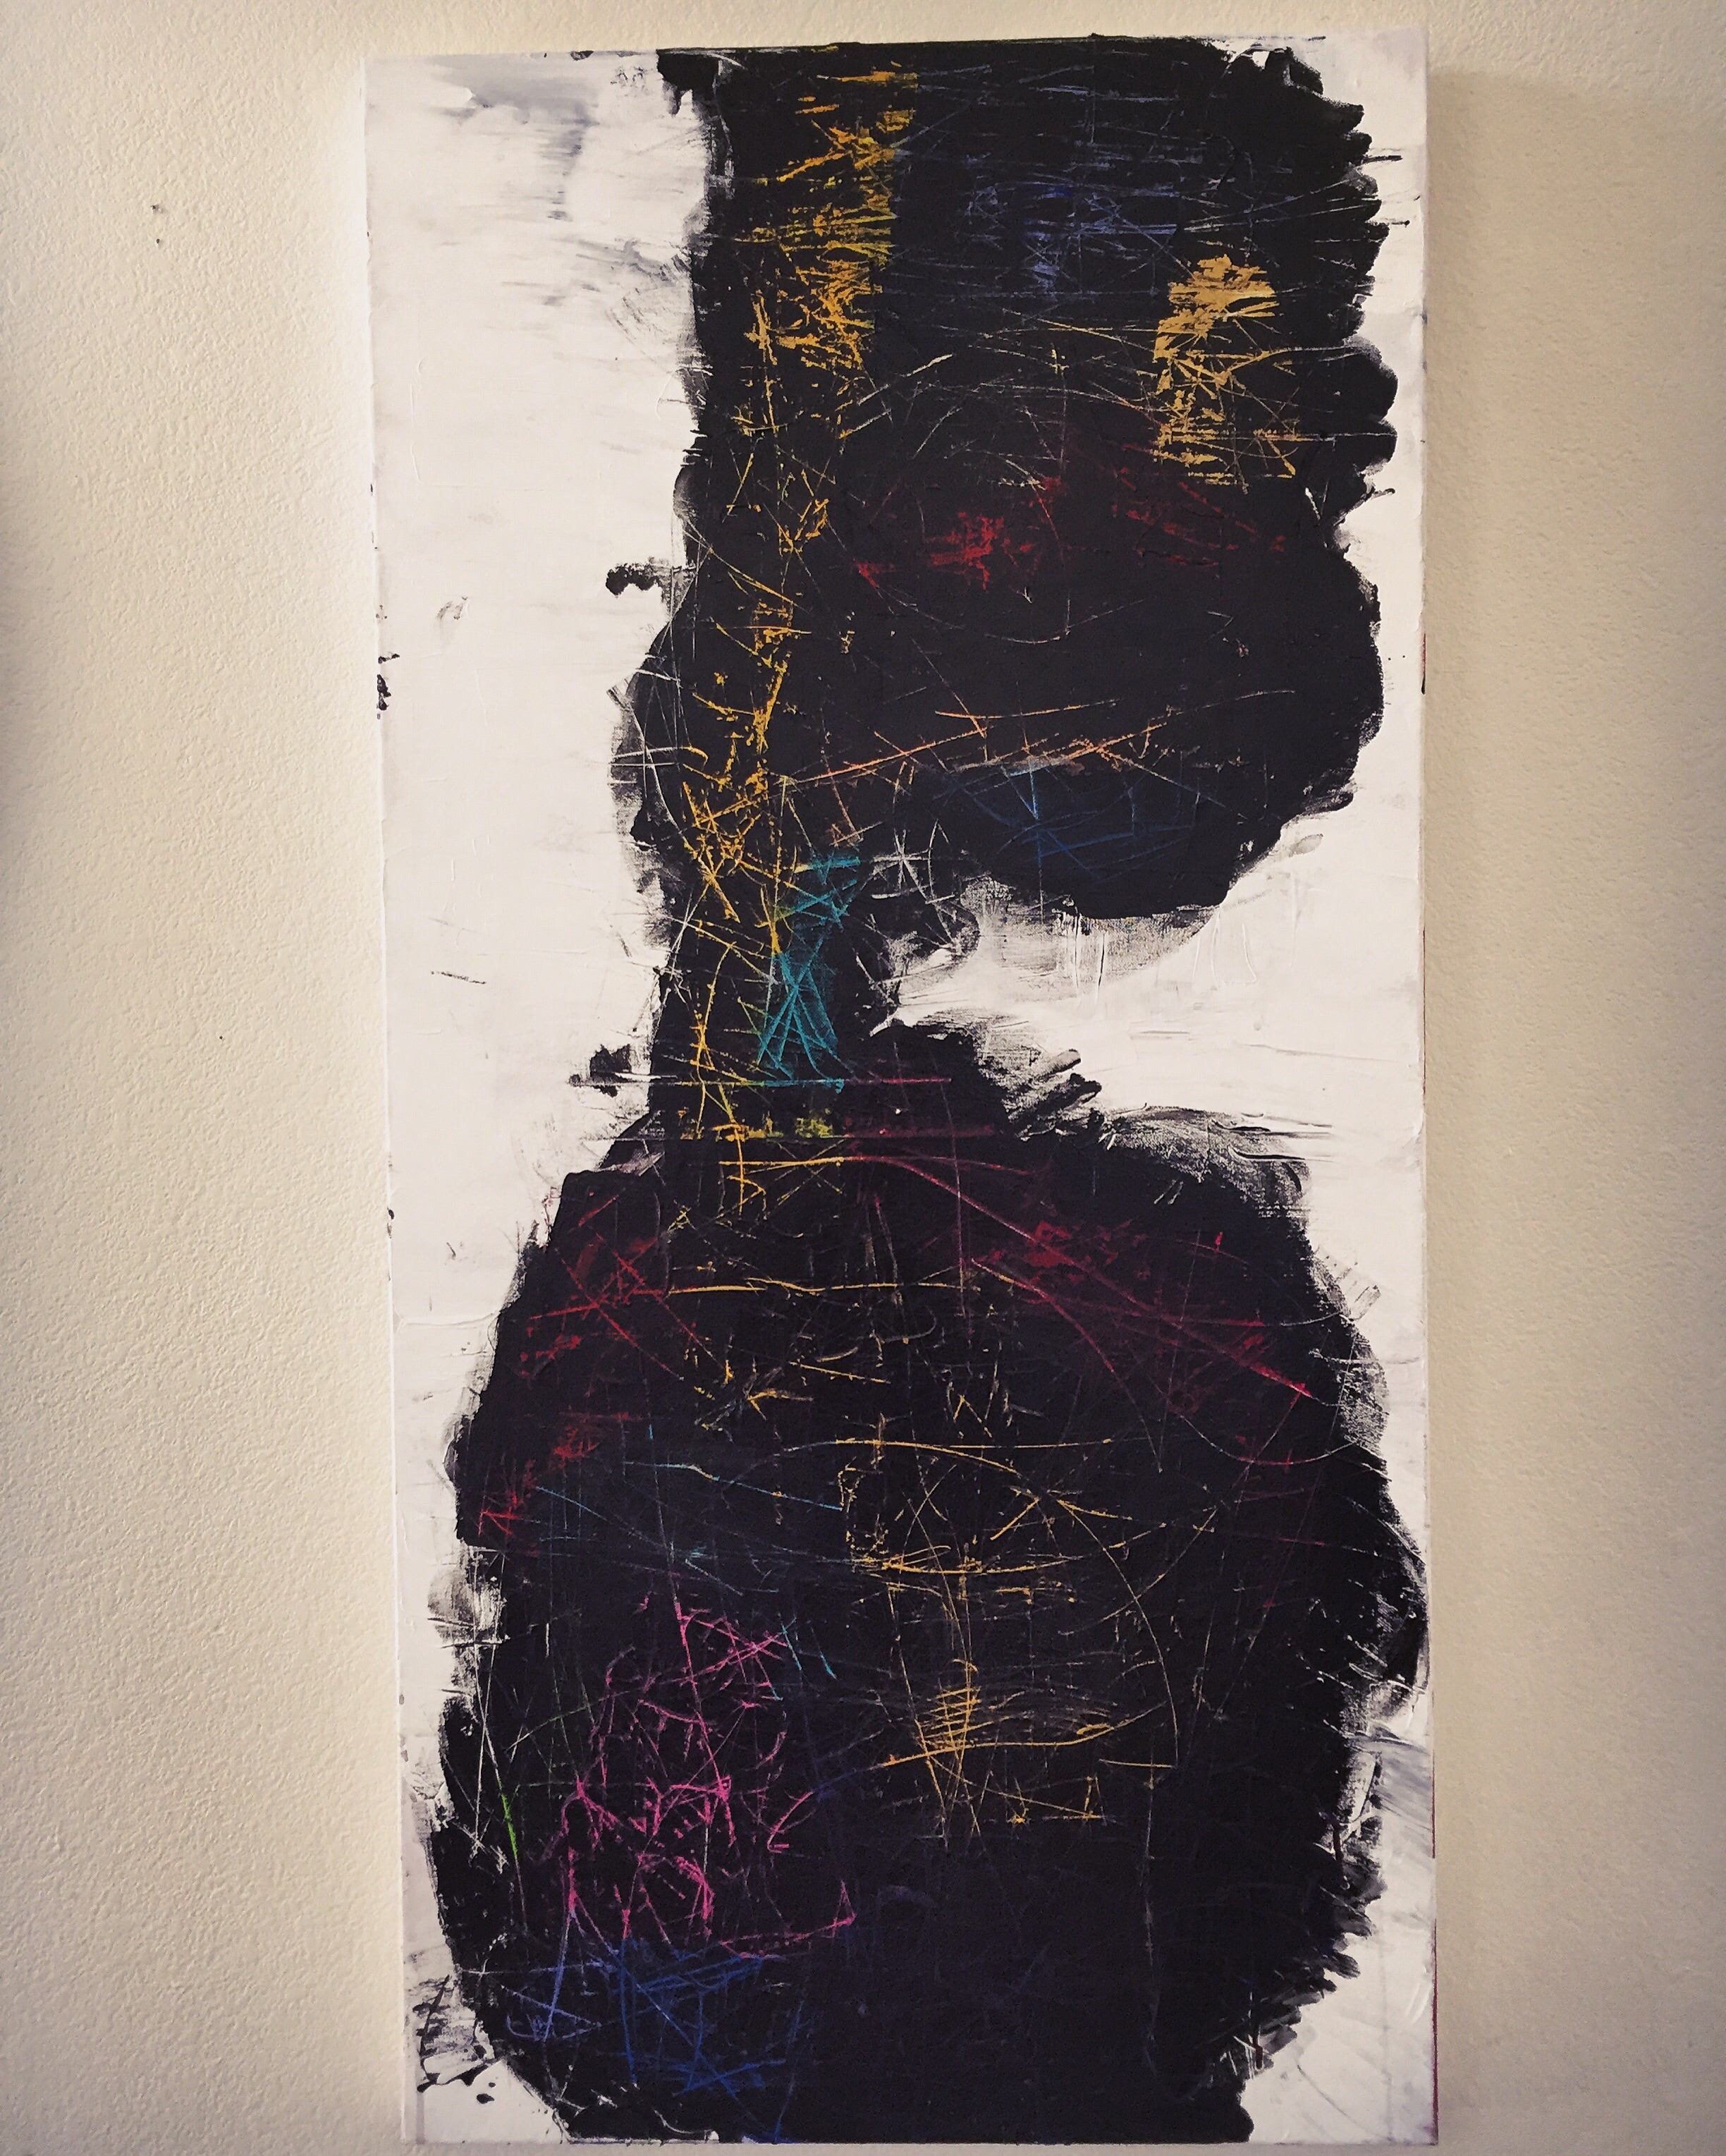 """""""But She Has Everything She Needs With to Survive"""", acrylic on canvas, from The Laughing Barrel series, an exploration of the historical origins and personal impact of emotional and expressive suppression in Black women."""